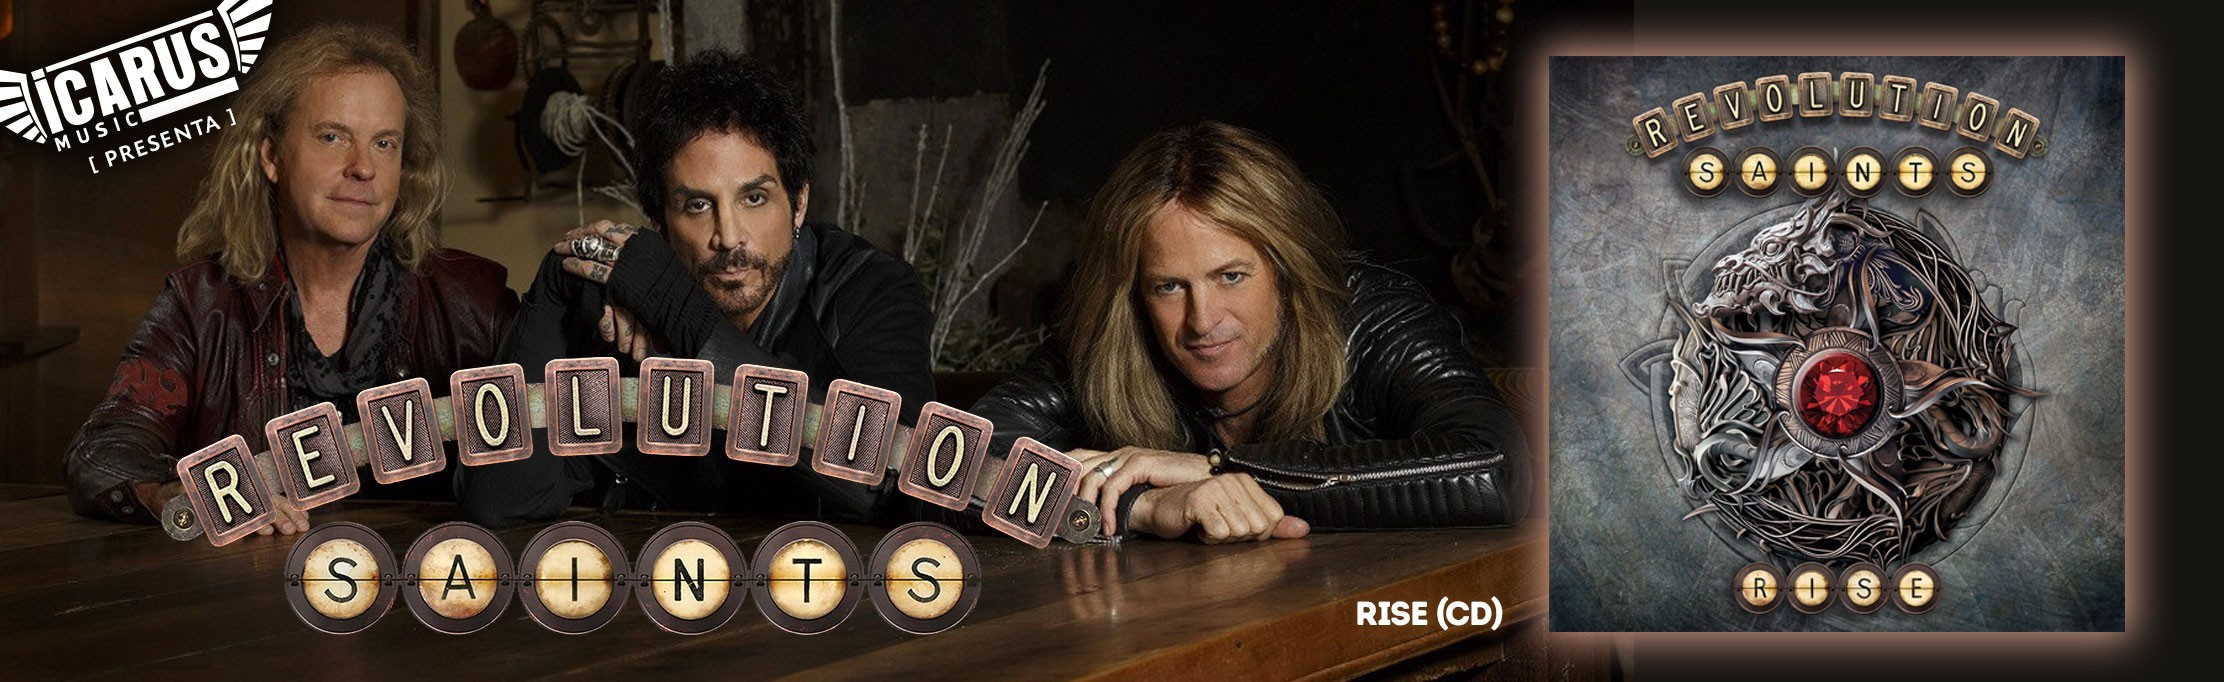 REVOLUTION SAINTS - Rise - Cd Revolution Saints, el supergrupo con Deen Castronovo